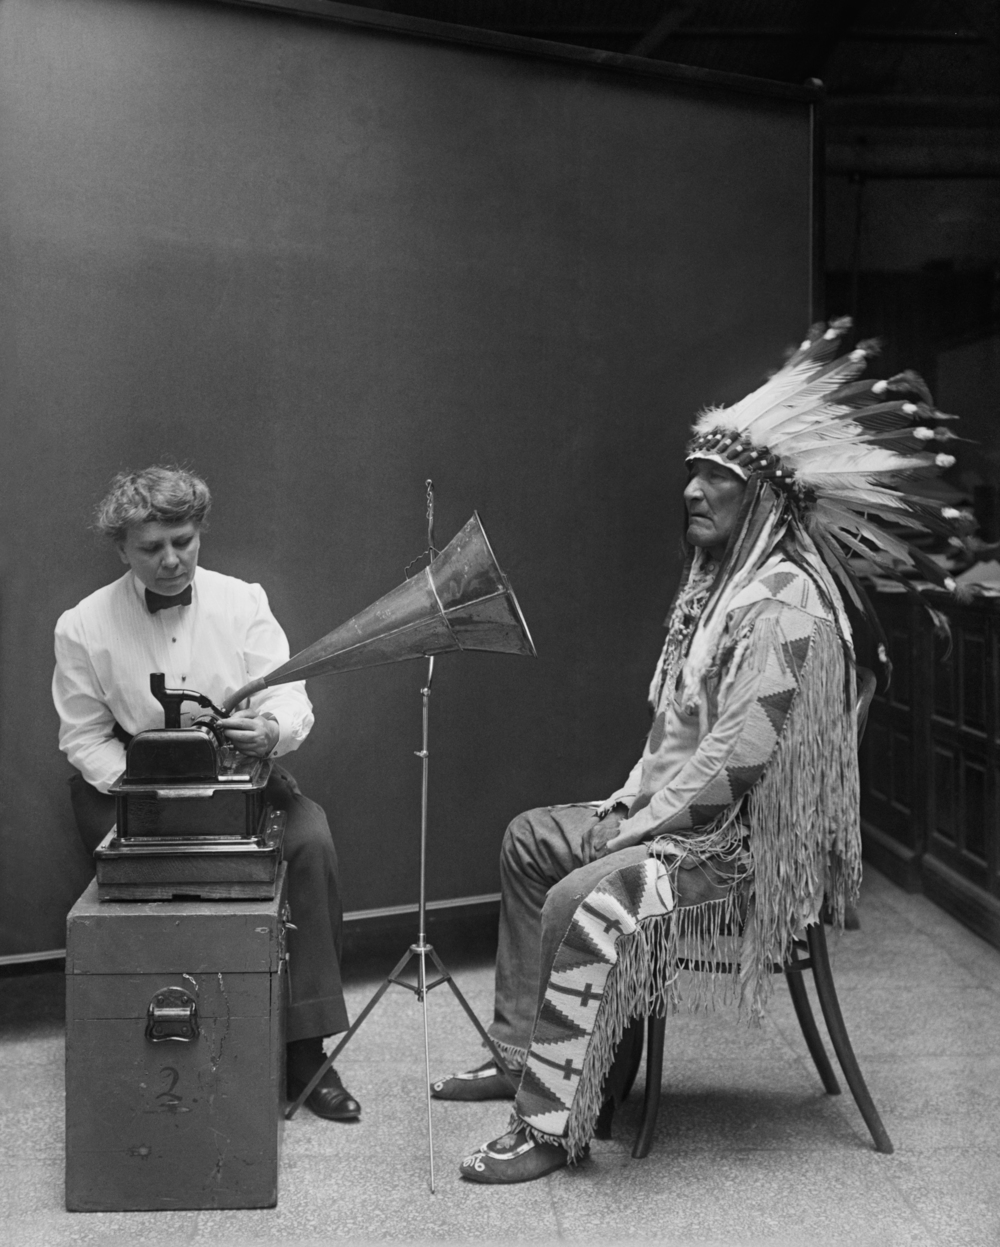 Frances Densmore with Blackfoot chief, Mountain Chief, during a 1916 phonograph recording session for the Bureau of American Ethnology.